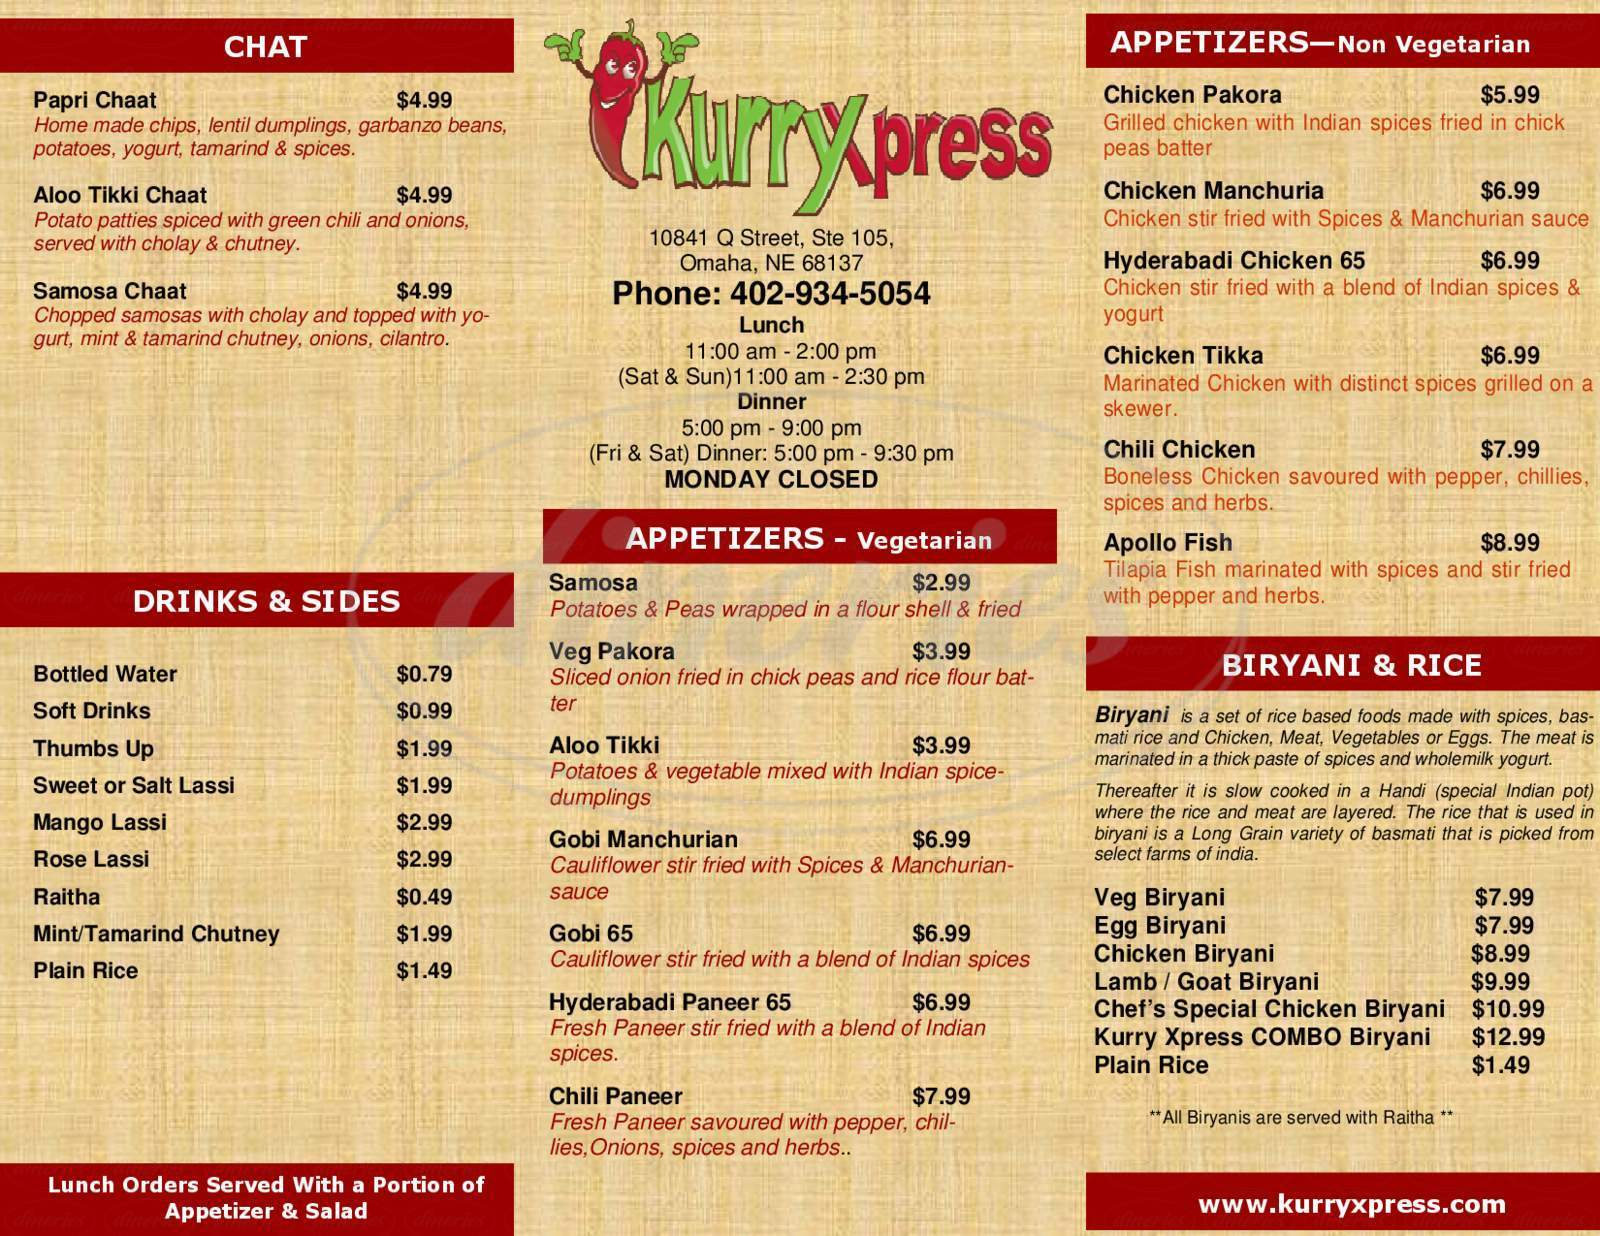 menu for Kurry Xpress